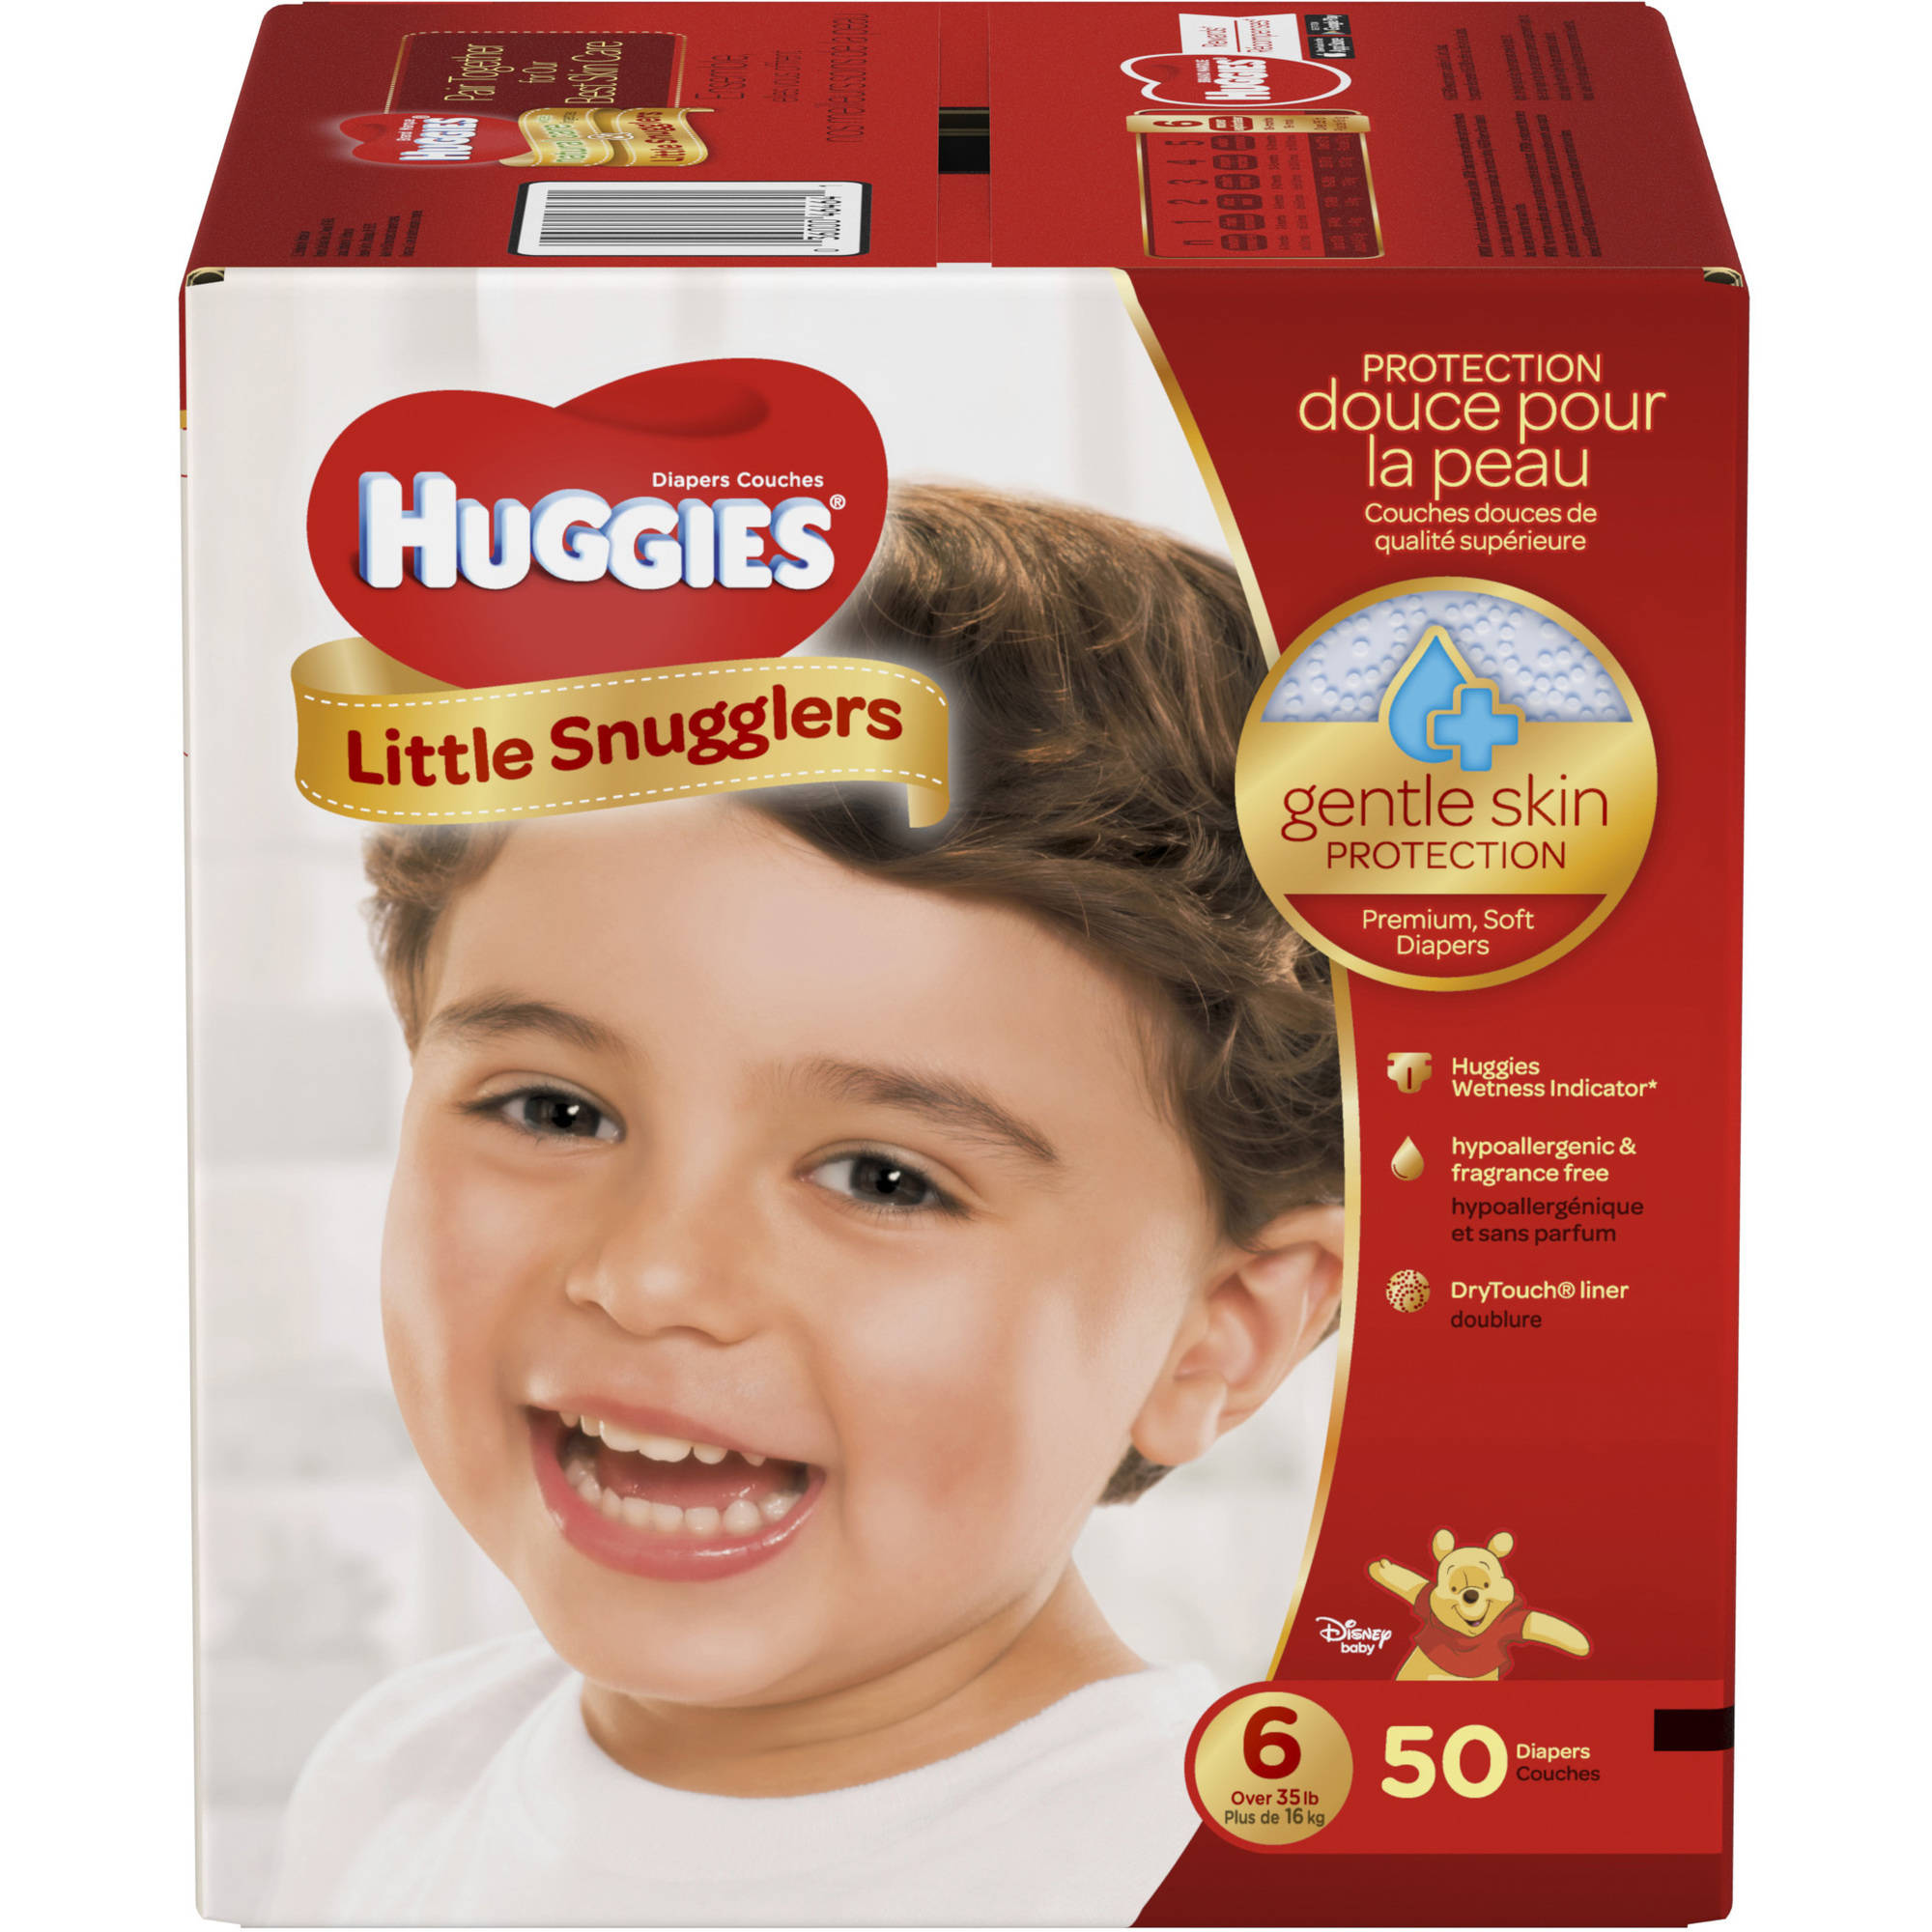 HUGGIES Little Snugglers Baby Diapers, Size 6, 50 count